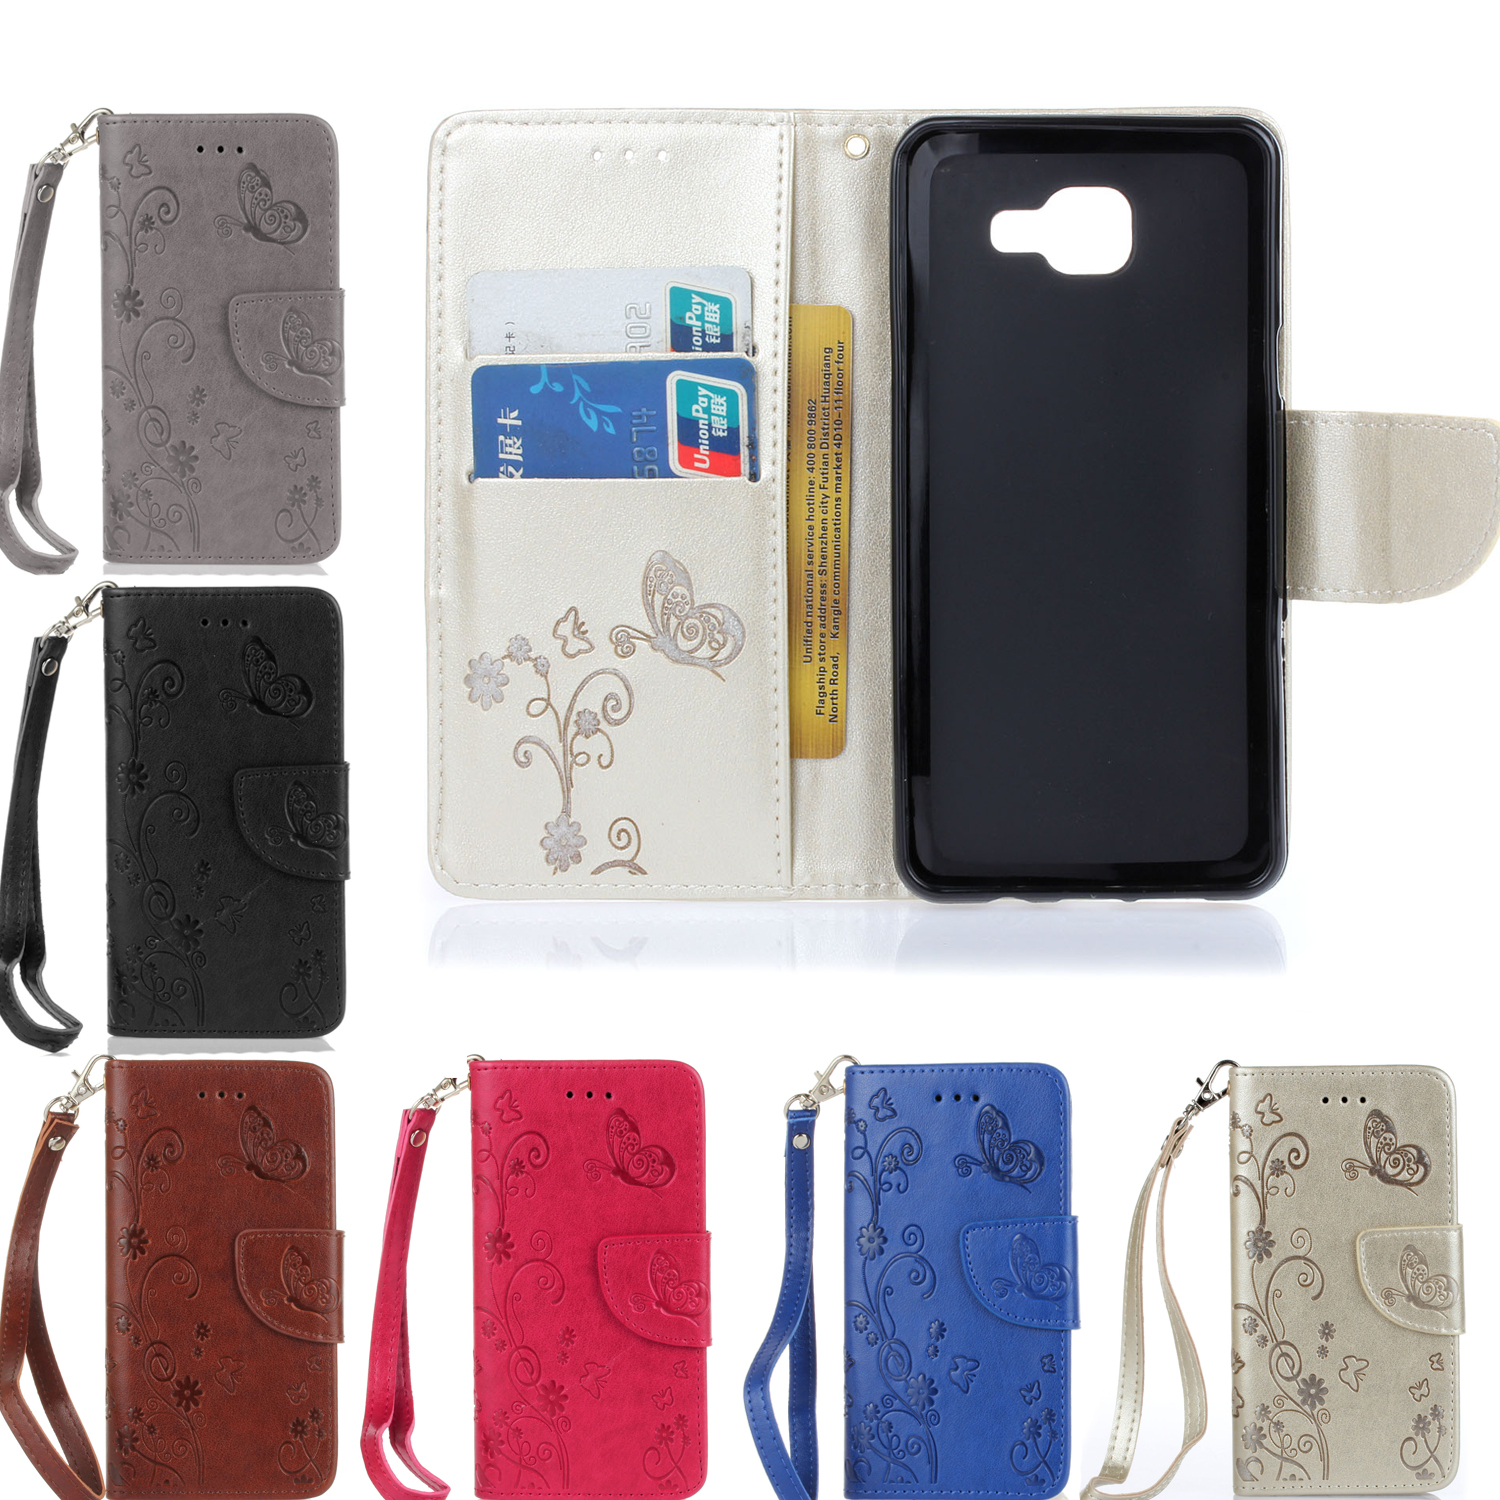 Phone Phone Cases Android online buy wholesale android phone case wallet from china embossed butterfly leather flip cases cover for samsung galaxy a3 2016 a310 smartphone